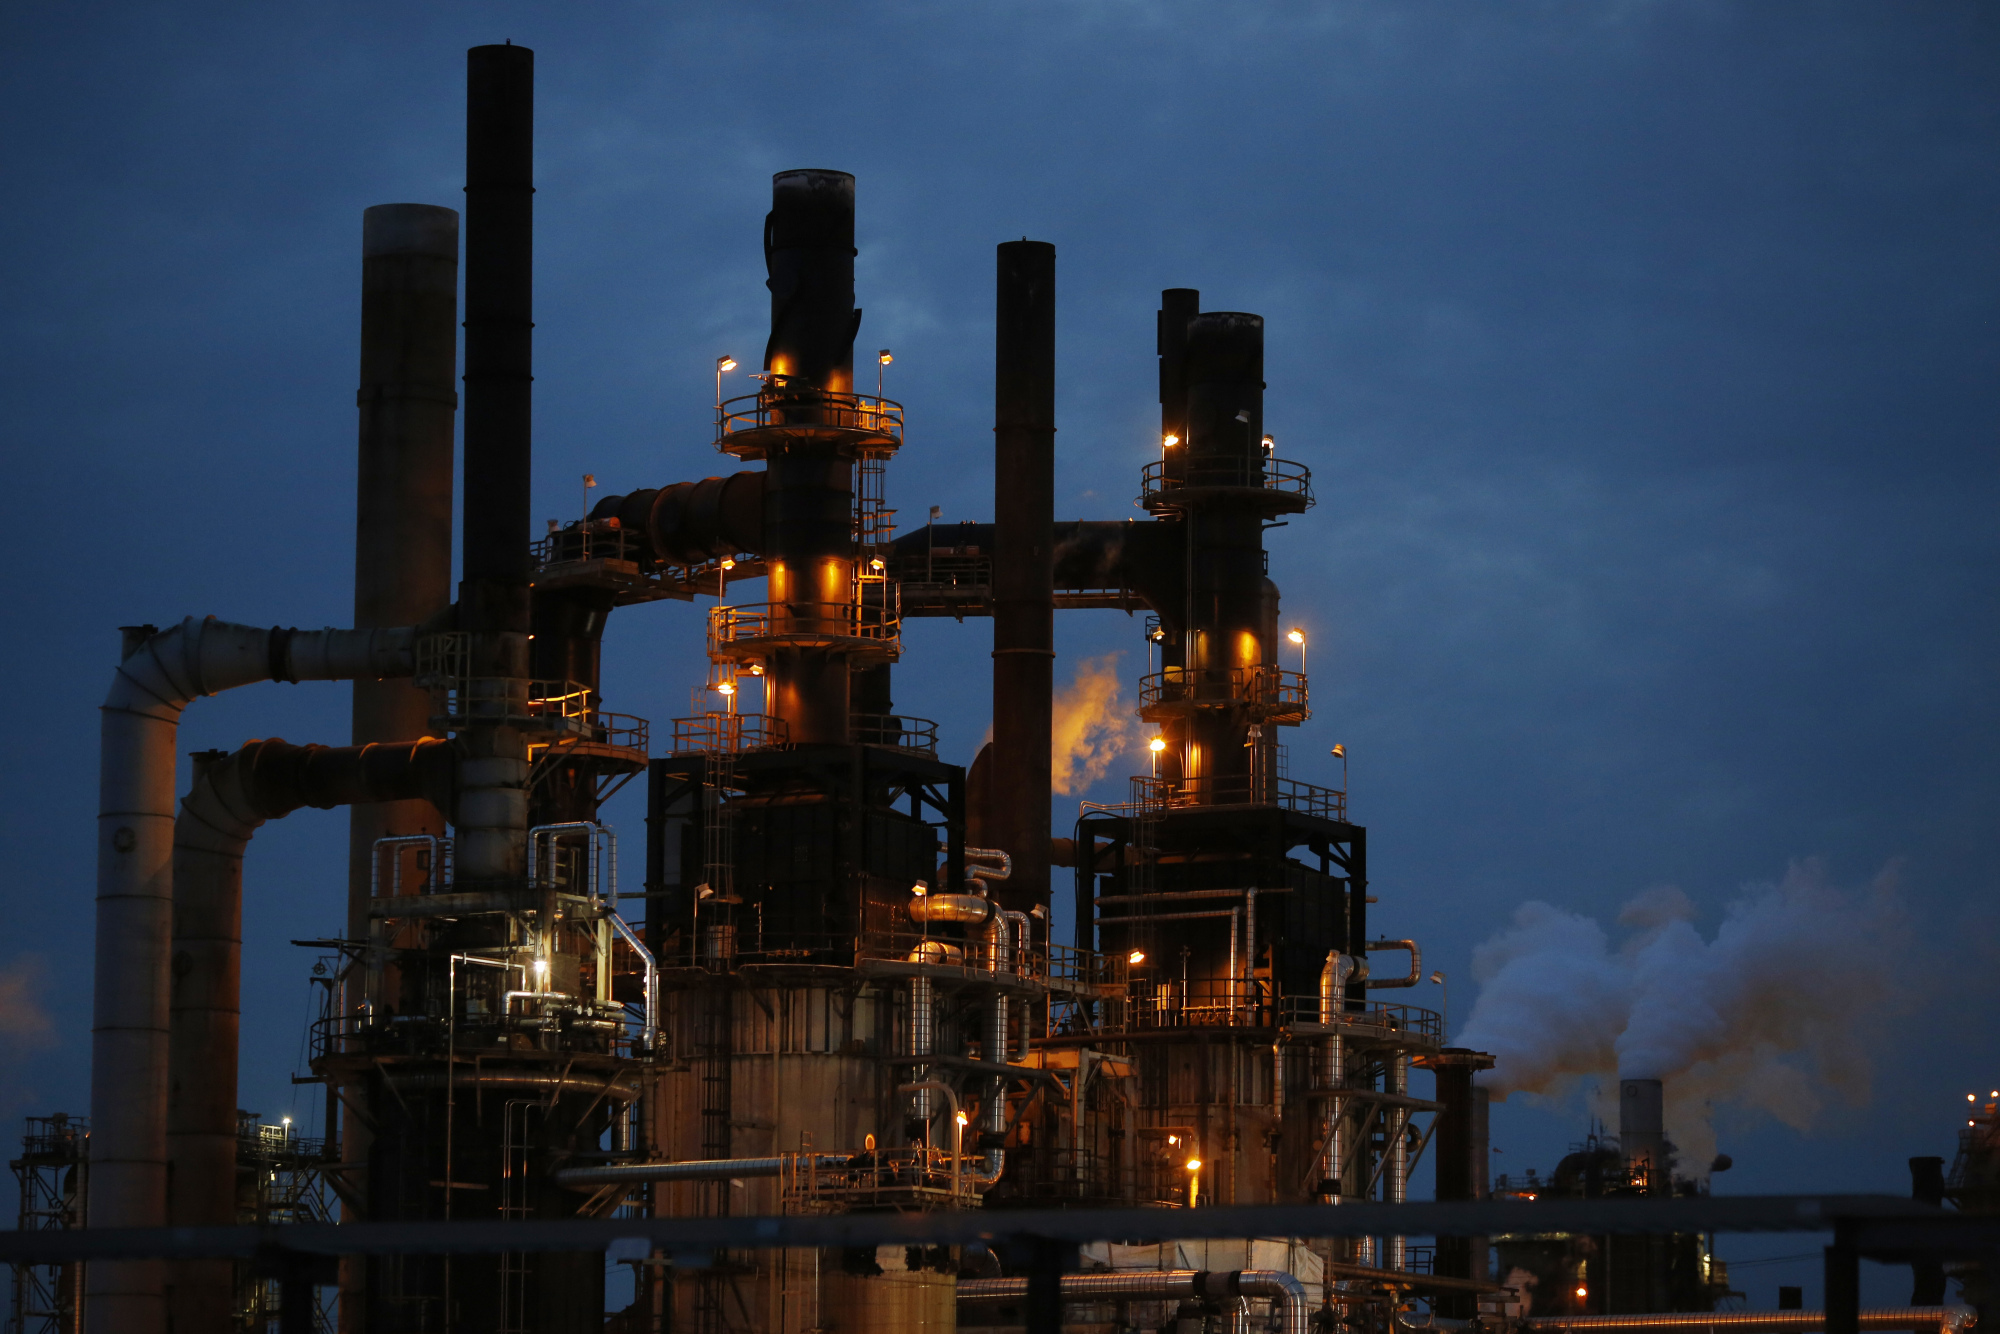 The Phillips 66 Wood River Refinery stands at dusk in Roxana, Illinois, U.S., on Tuesday, April 24, 2017. Photographer: Luke Sharrett/Bloomberg